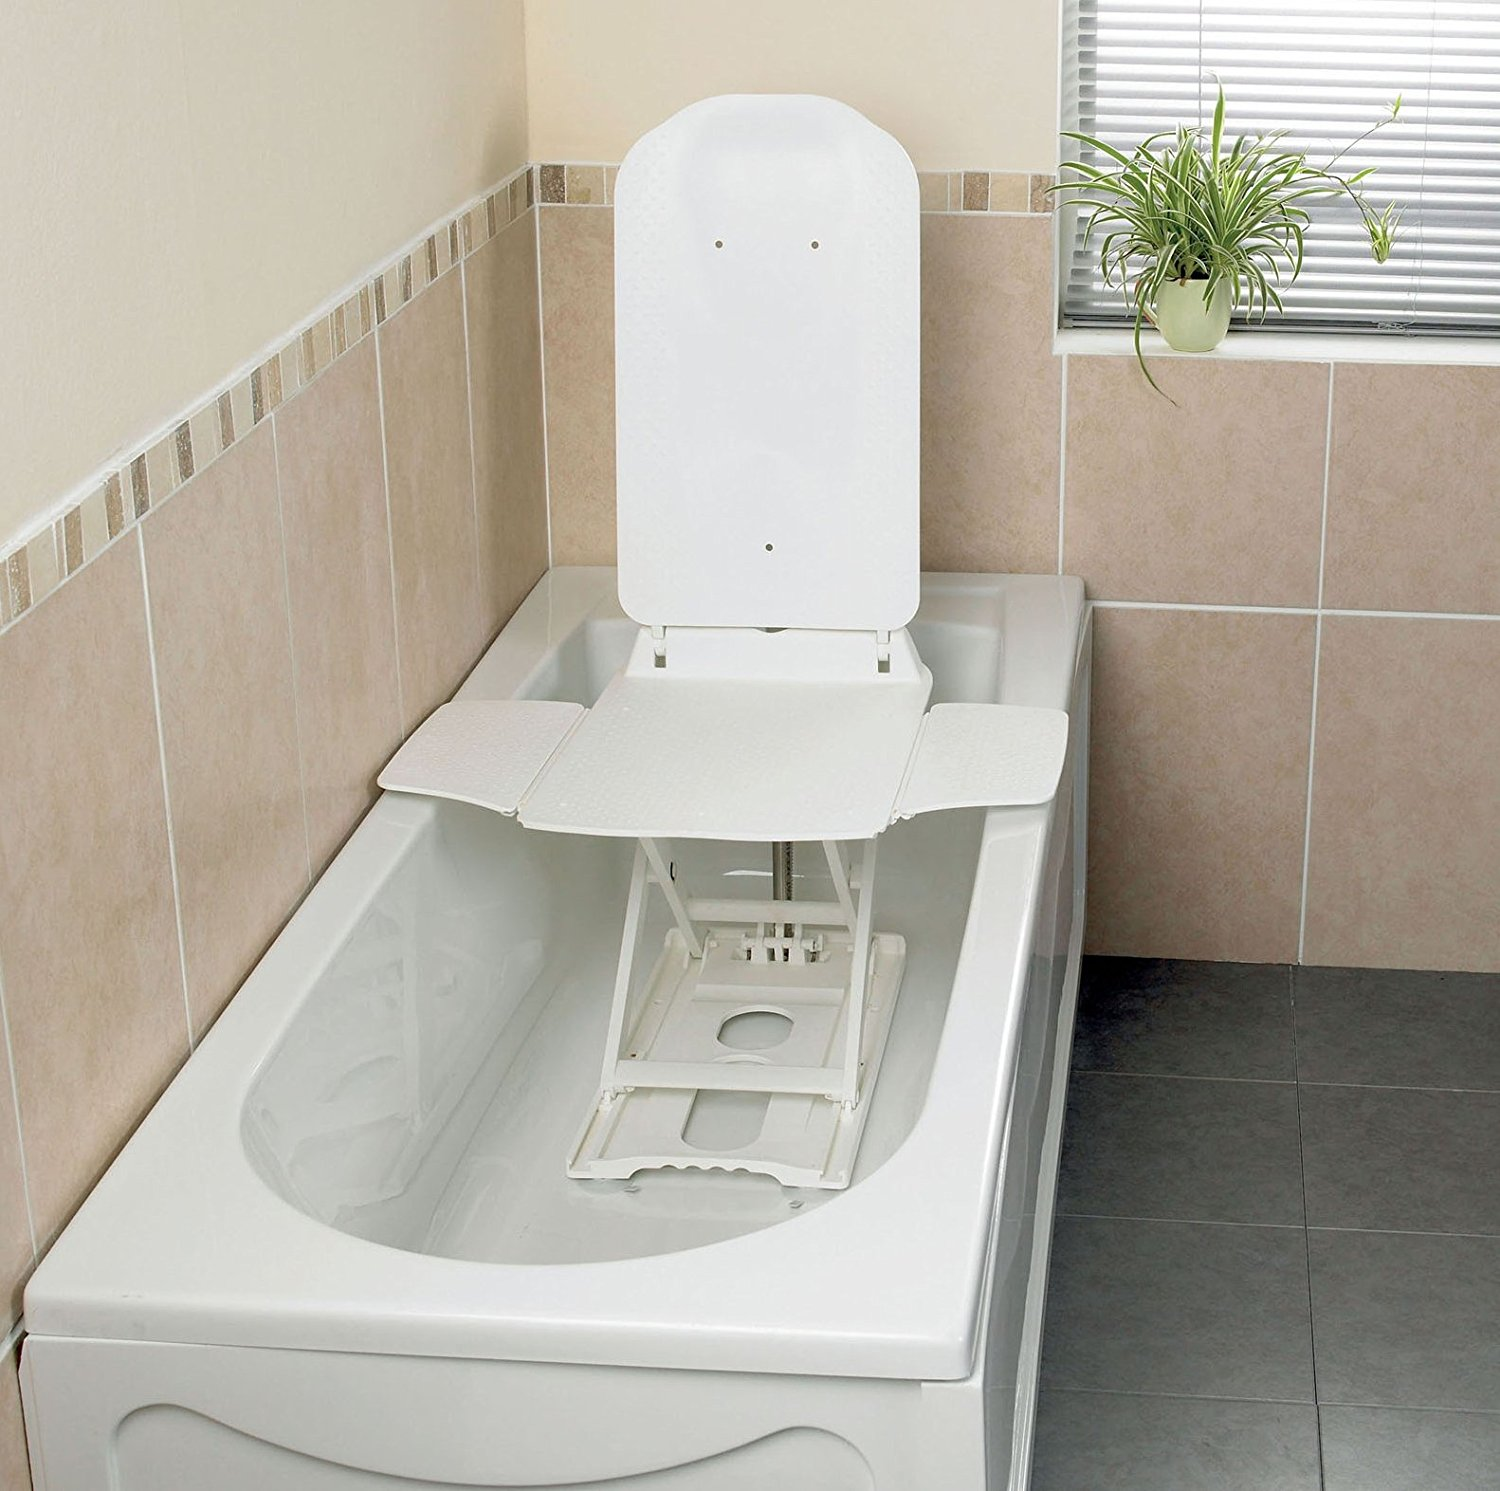 Bathmaster Deltis Bath Lift Review